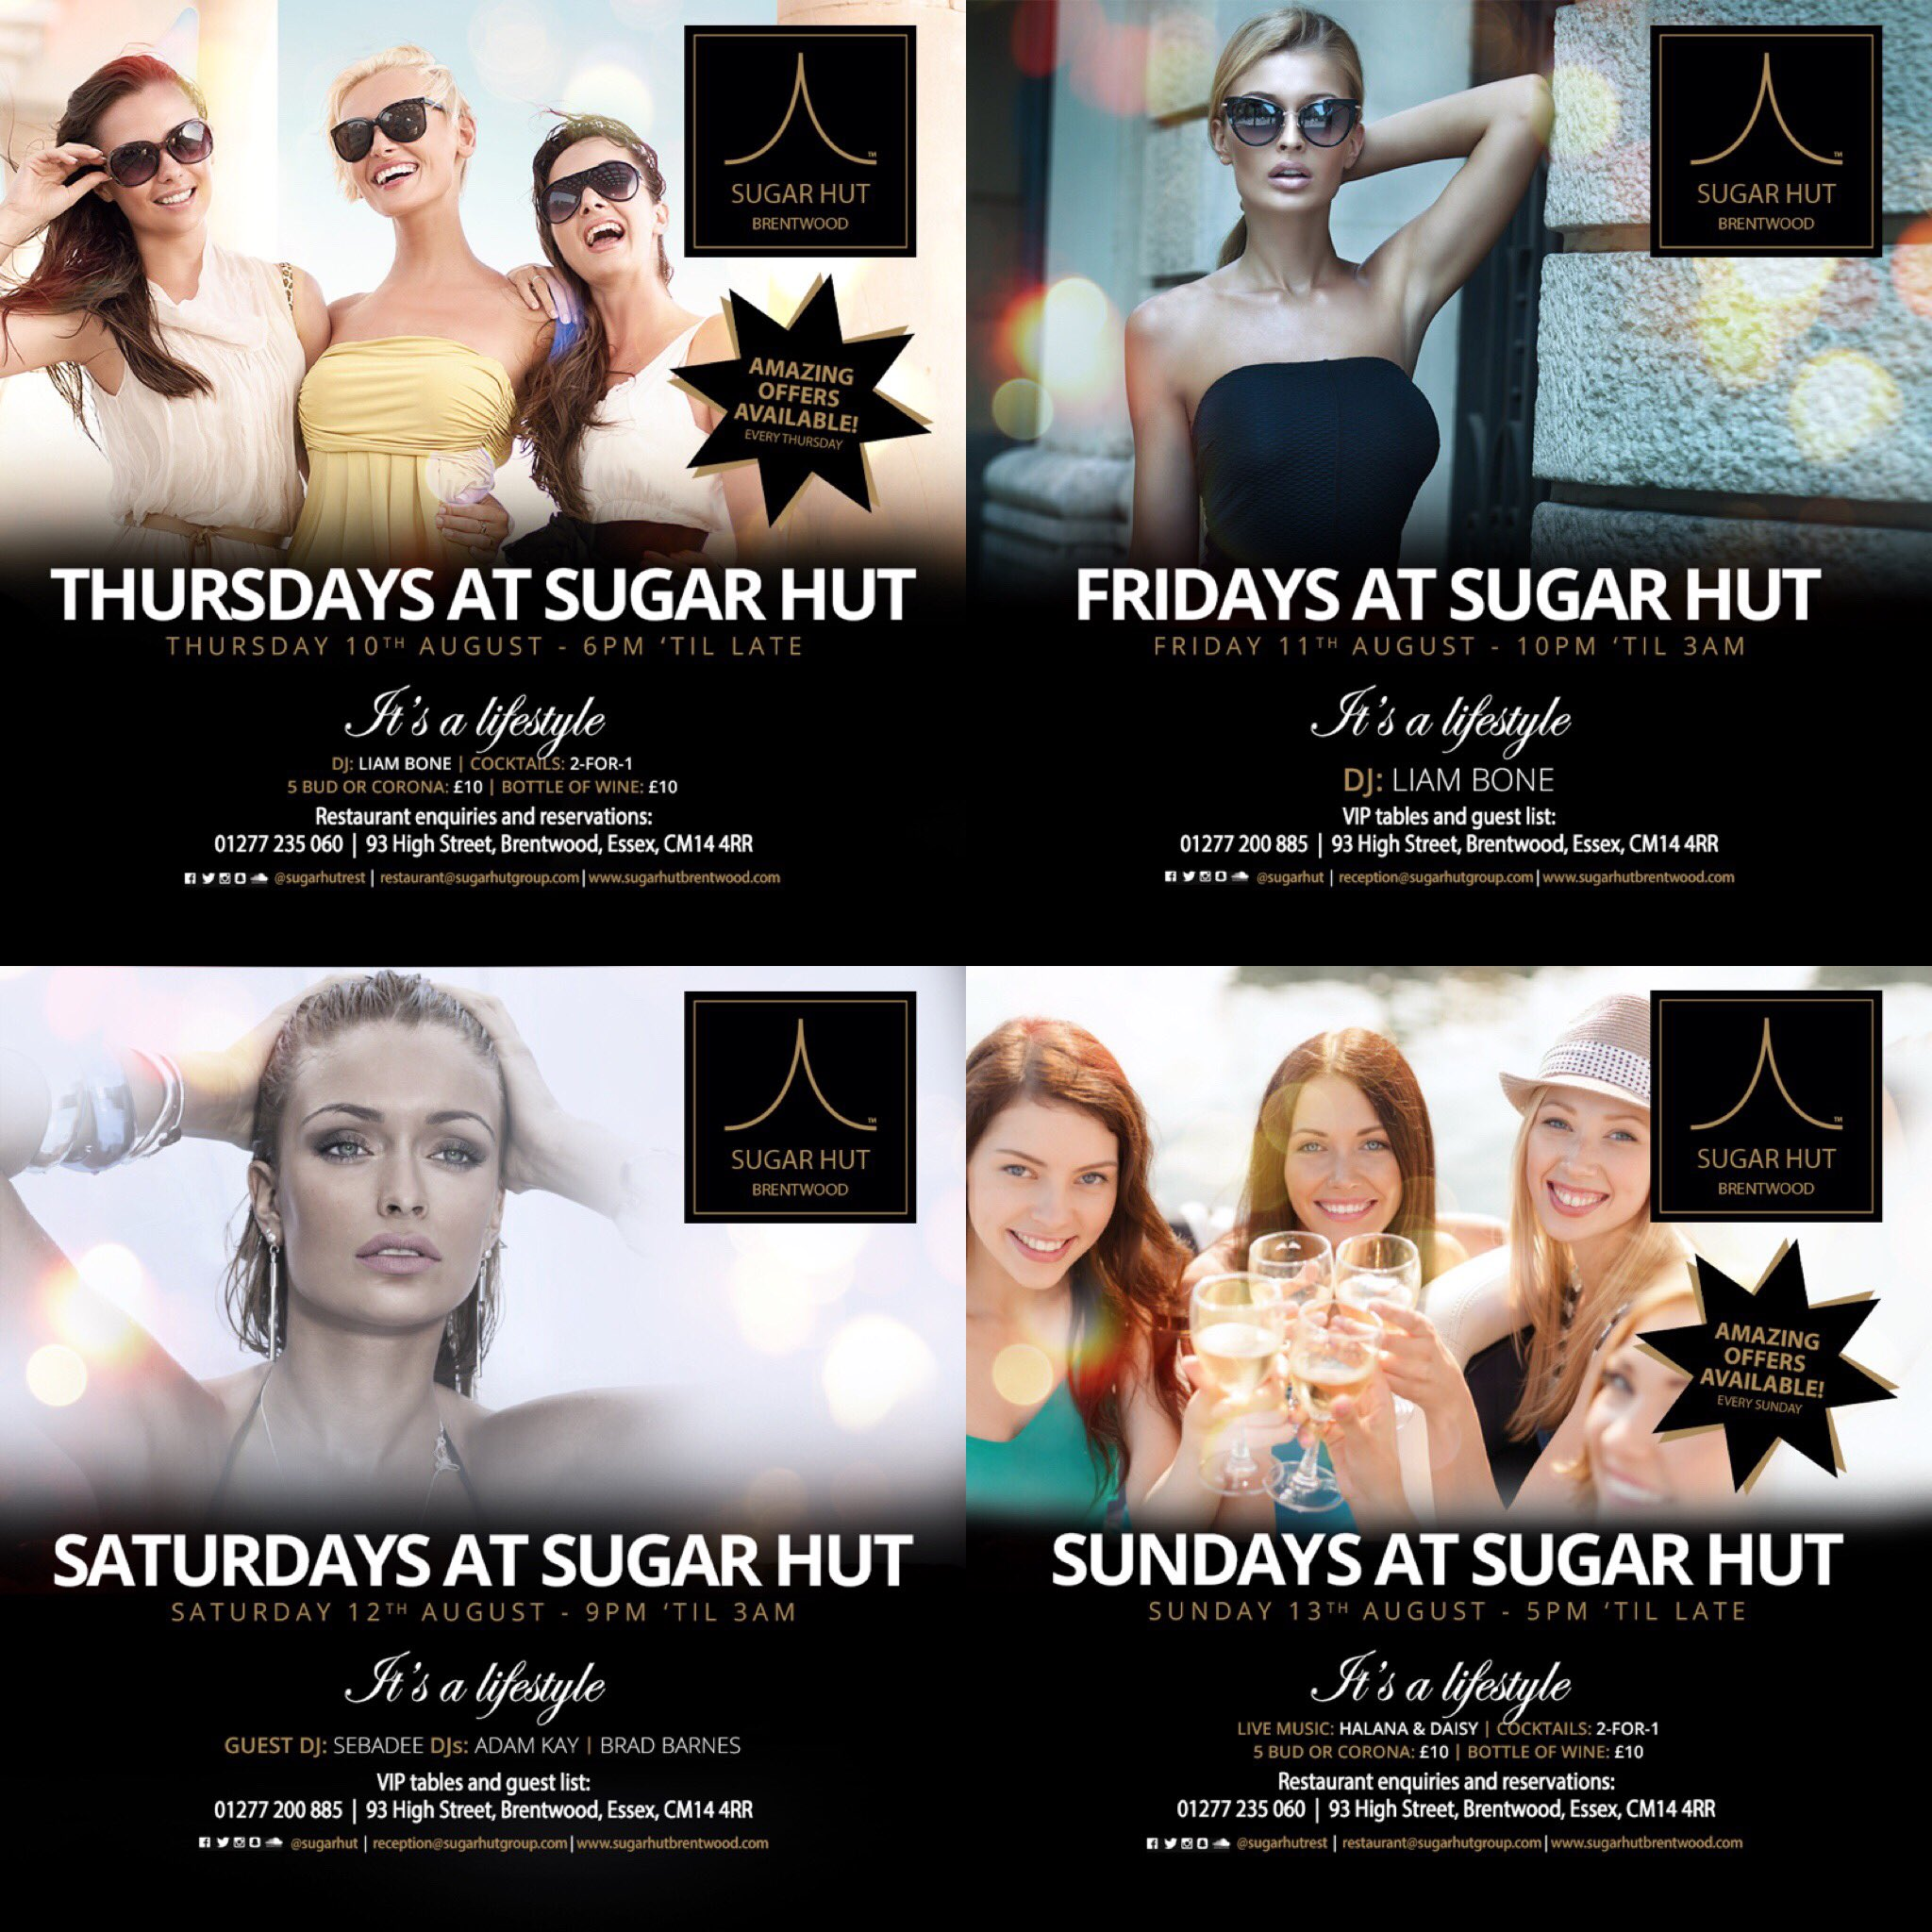 We have a jam packed weekend on the way @sugarhut ... For VIP tables call us on 01277 200885 📱 https://t.co/rQKRzDE39U